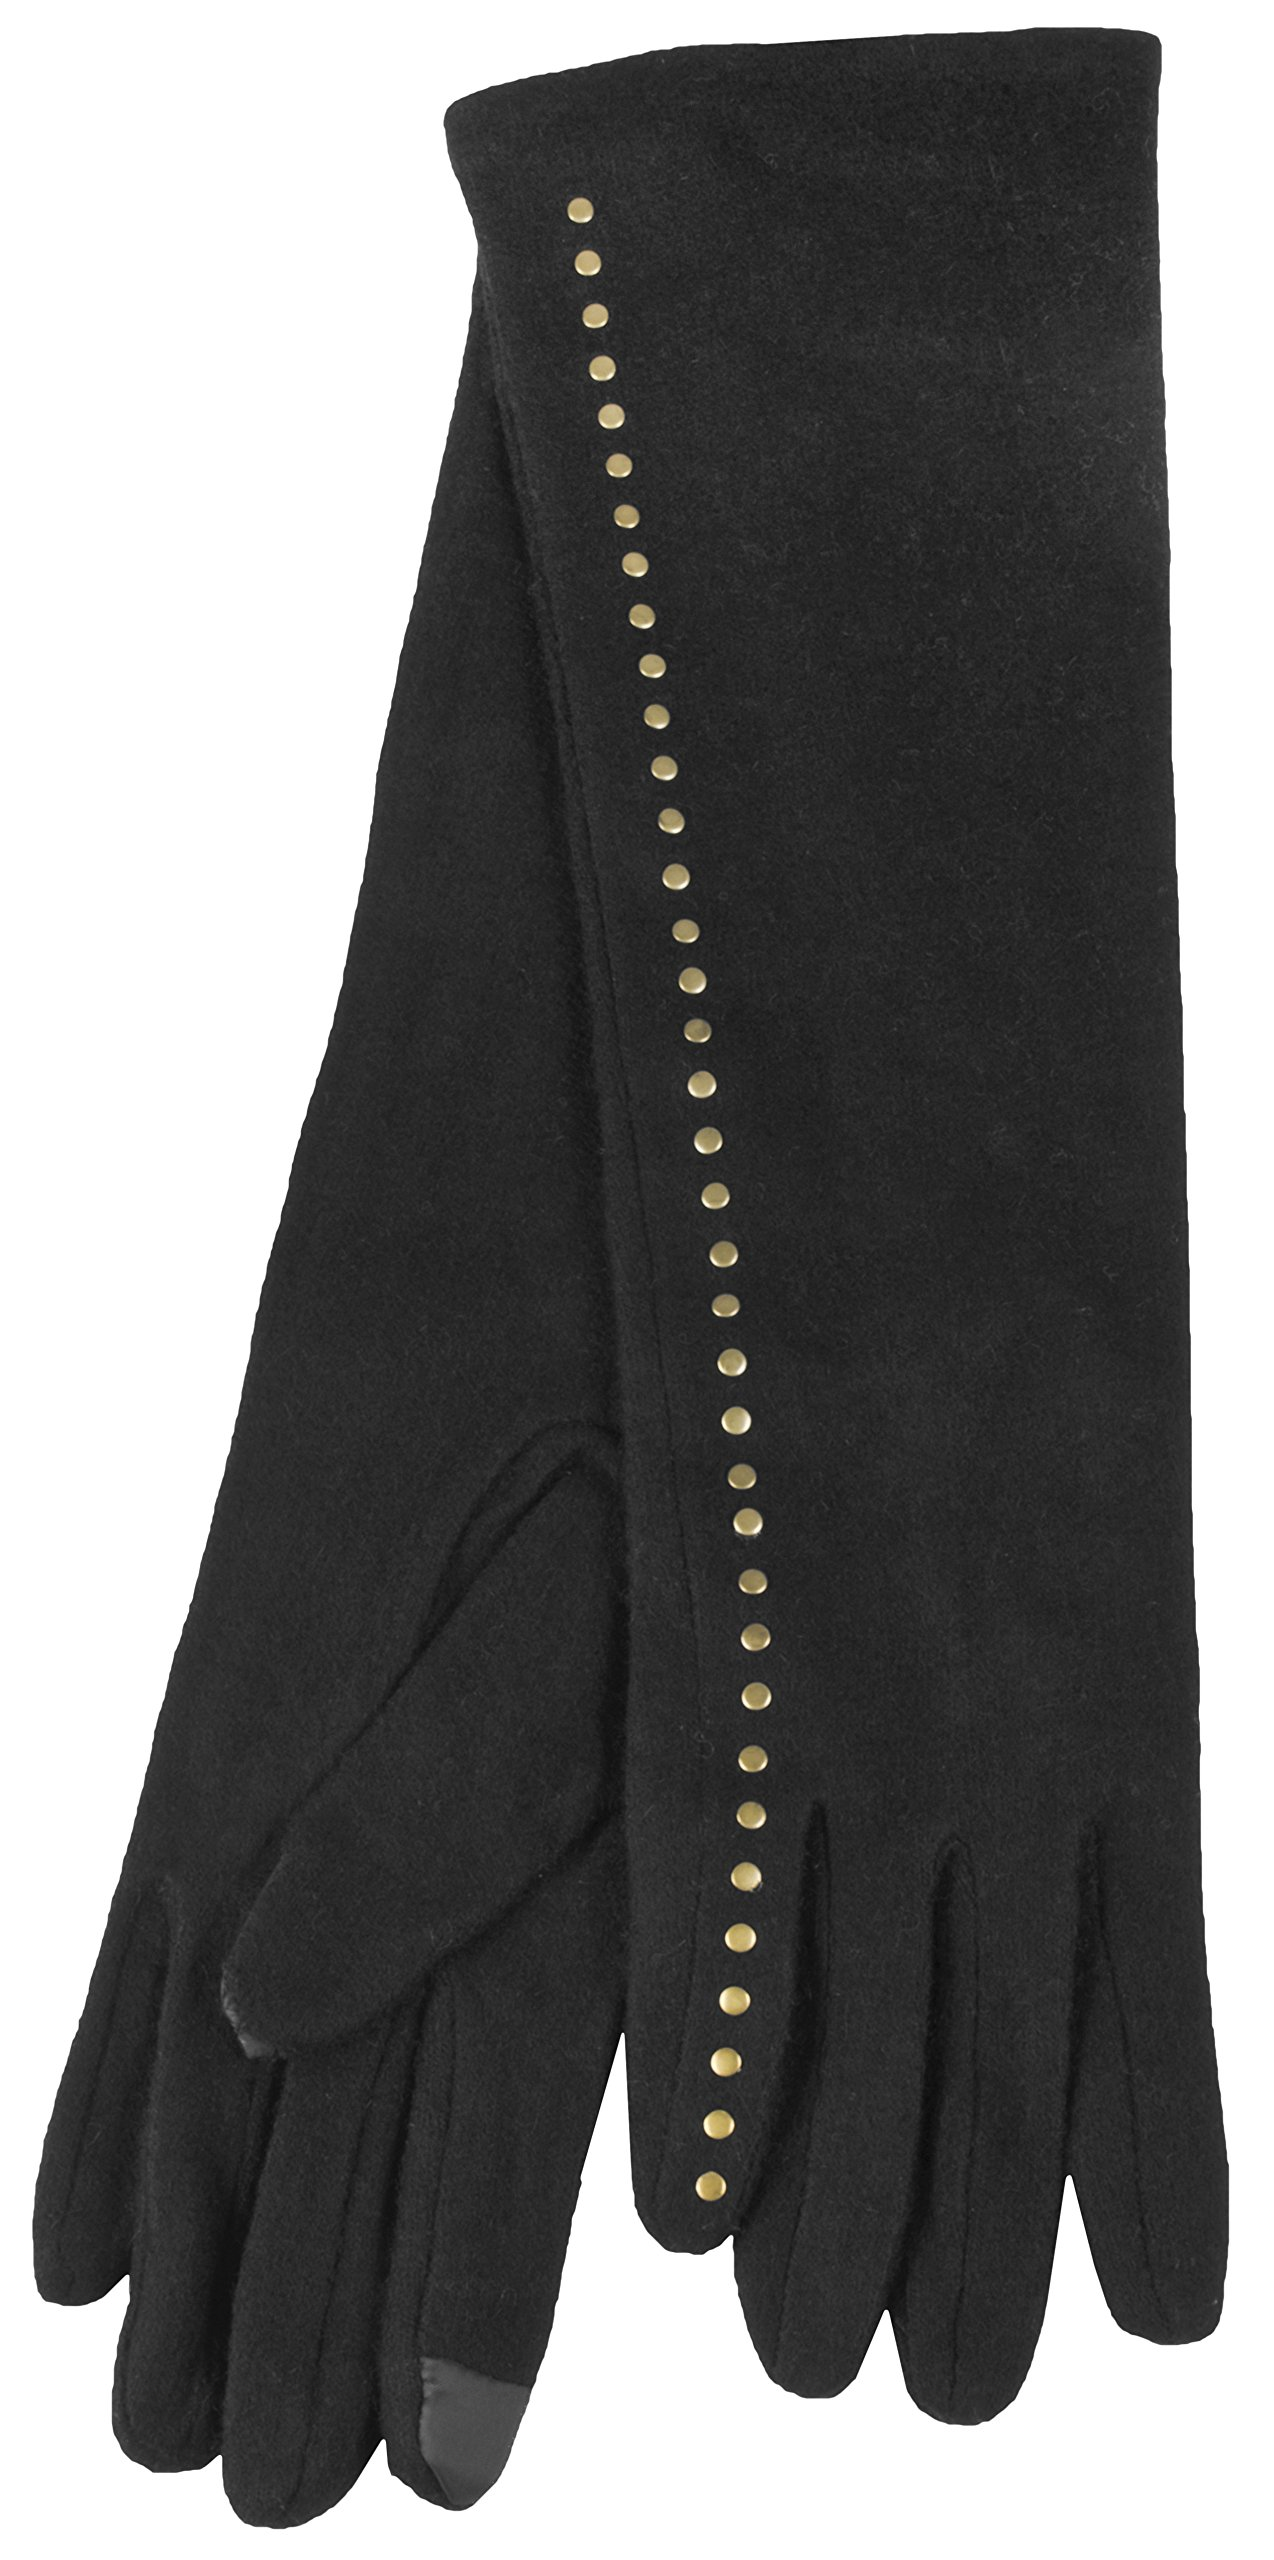 True Gear North Long Full Length Wool Women's Winter Gloves works with Touch Screens (Black)